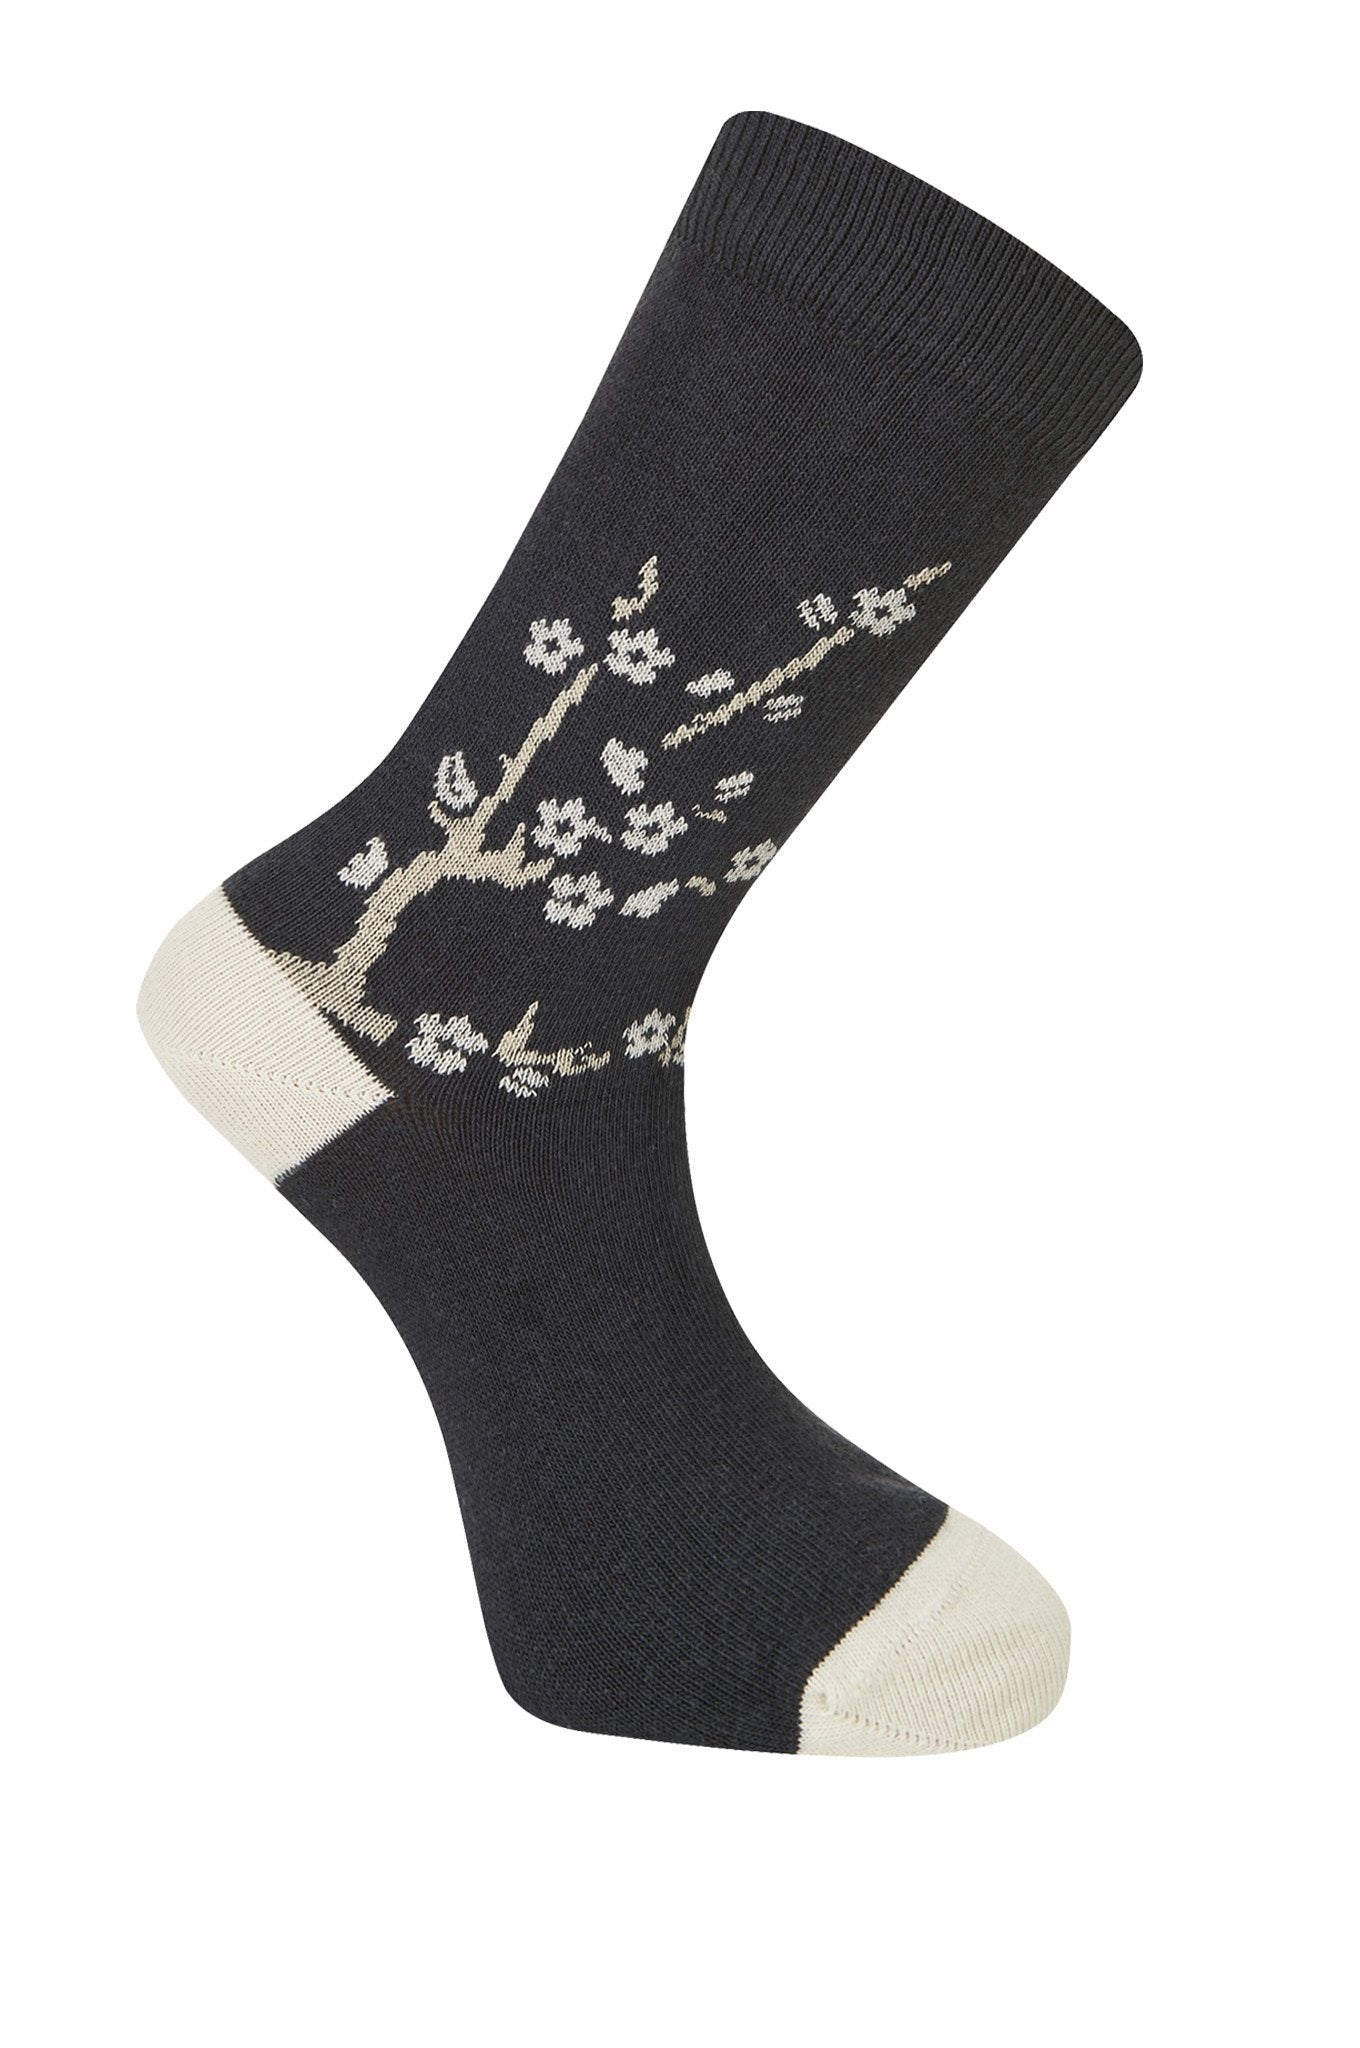 CHERRY Blossom Coal Organic Cotton Socks - Komodo Fashion